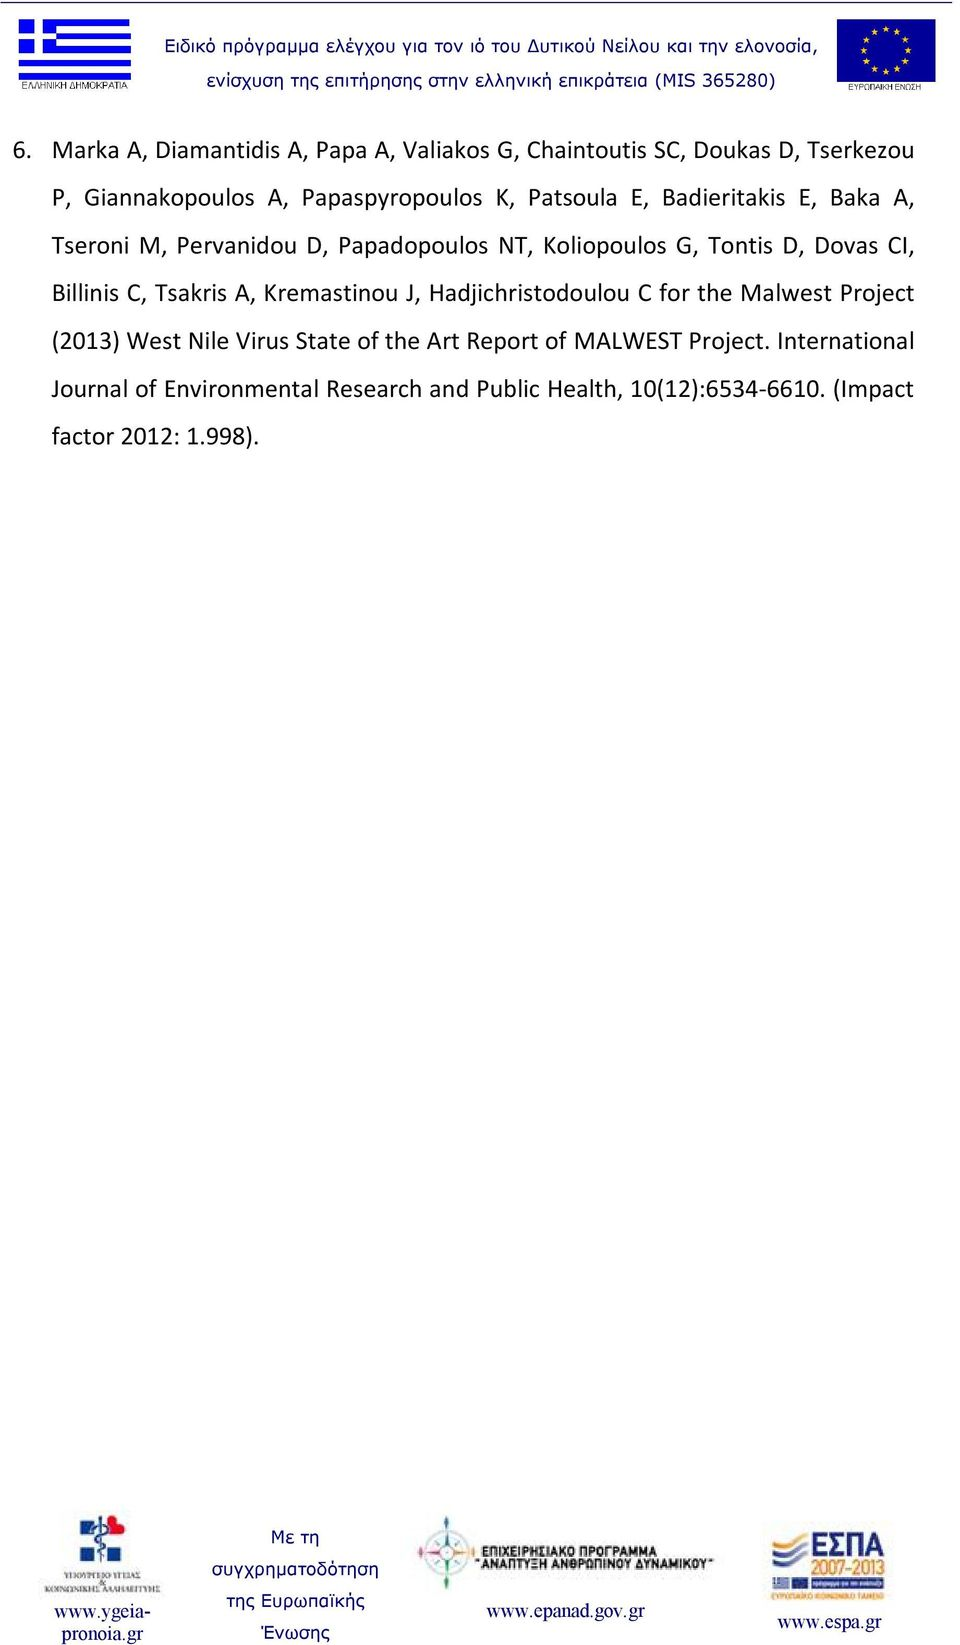 Tsakris A, Kremastinou J, Hadjichristodoulou C for the Malwest Project (2013) West Nile Virus State of the Art Report of